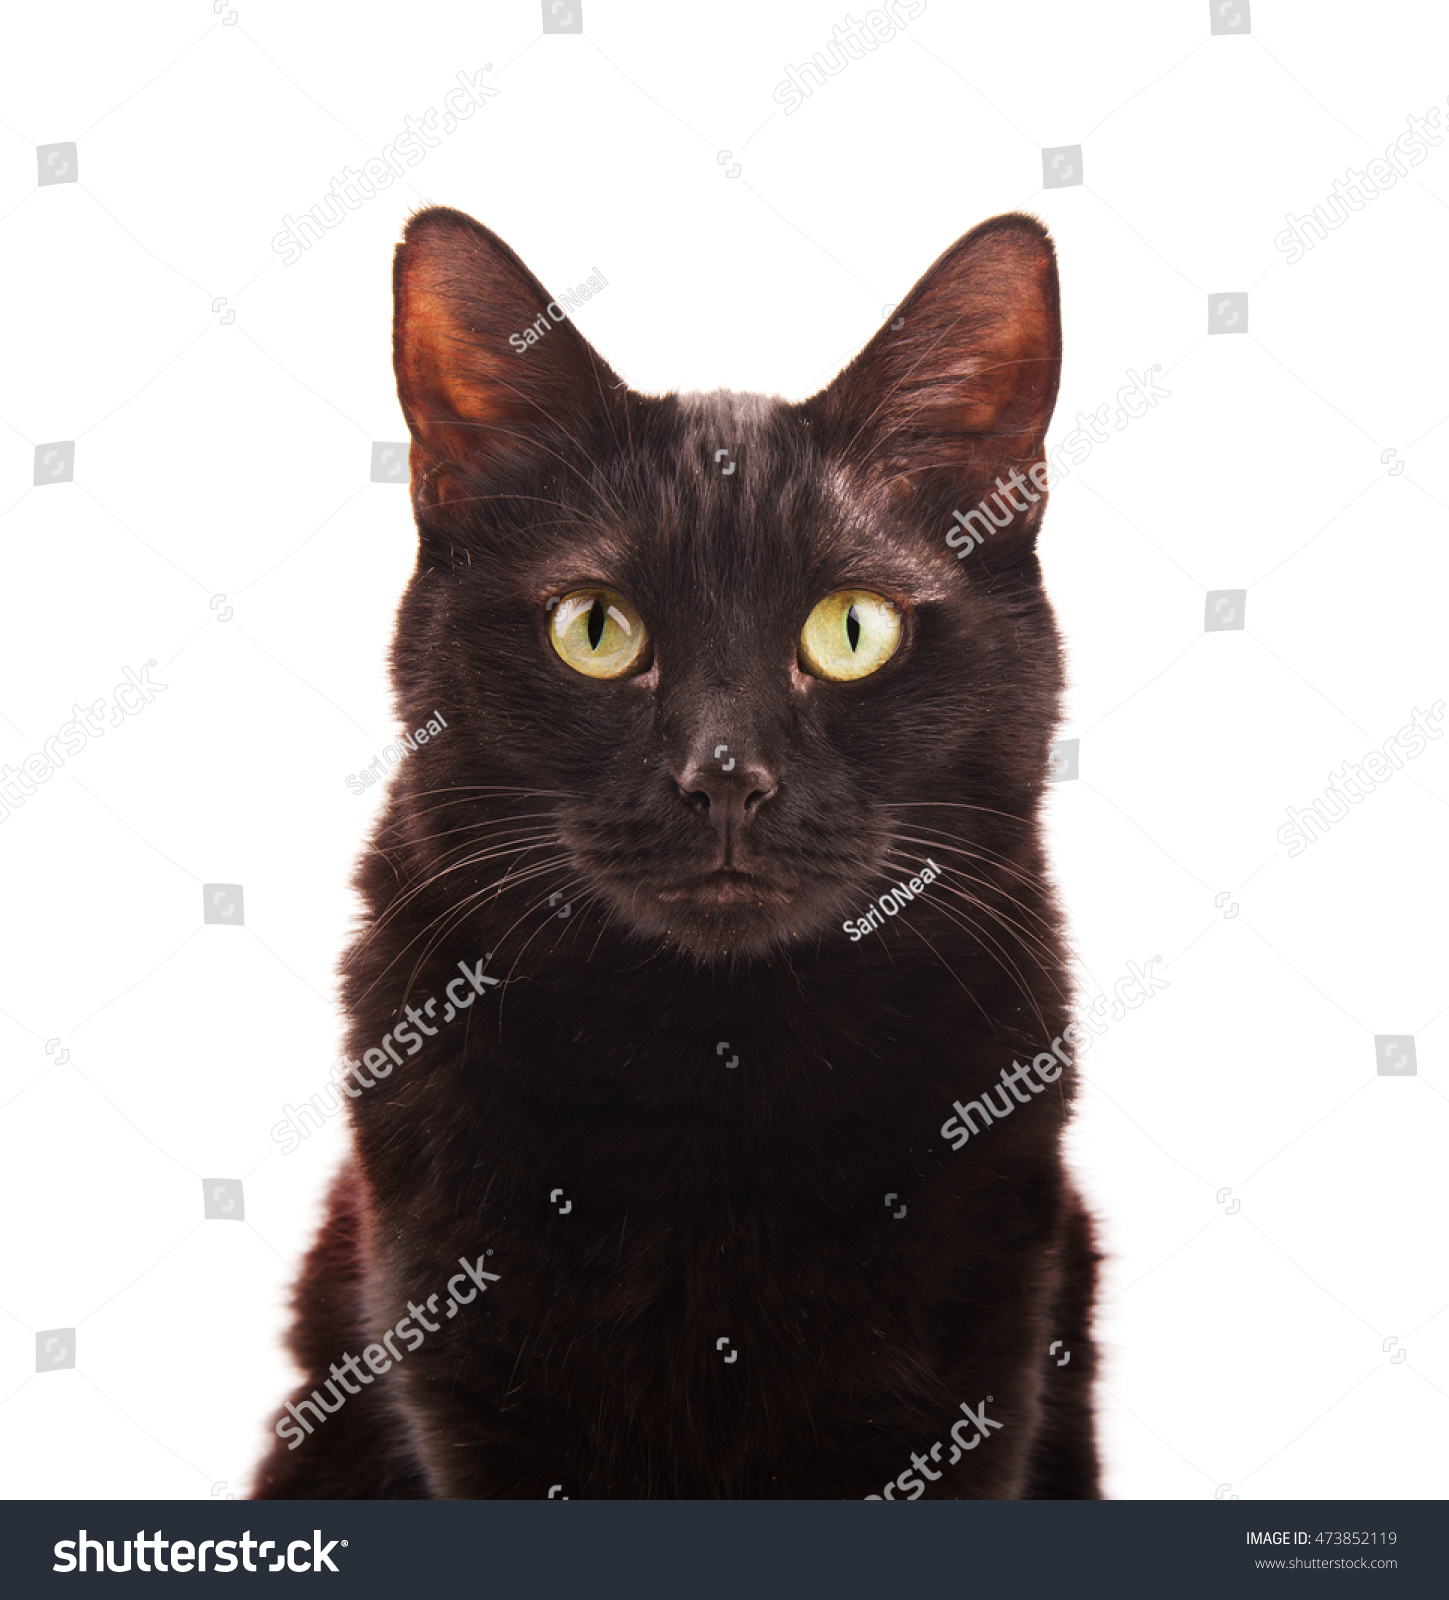 stock-photo-black-cat-looking-up-on-whit